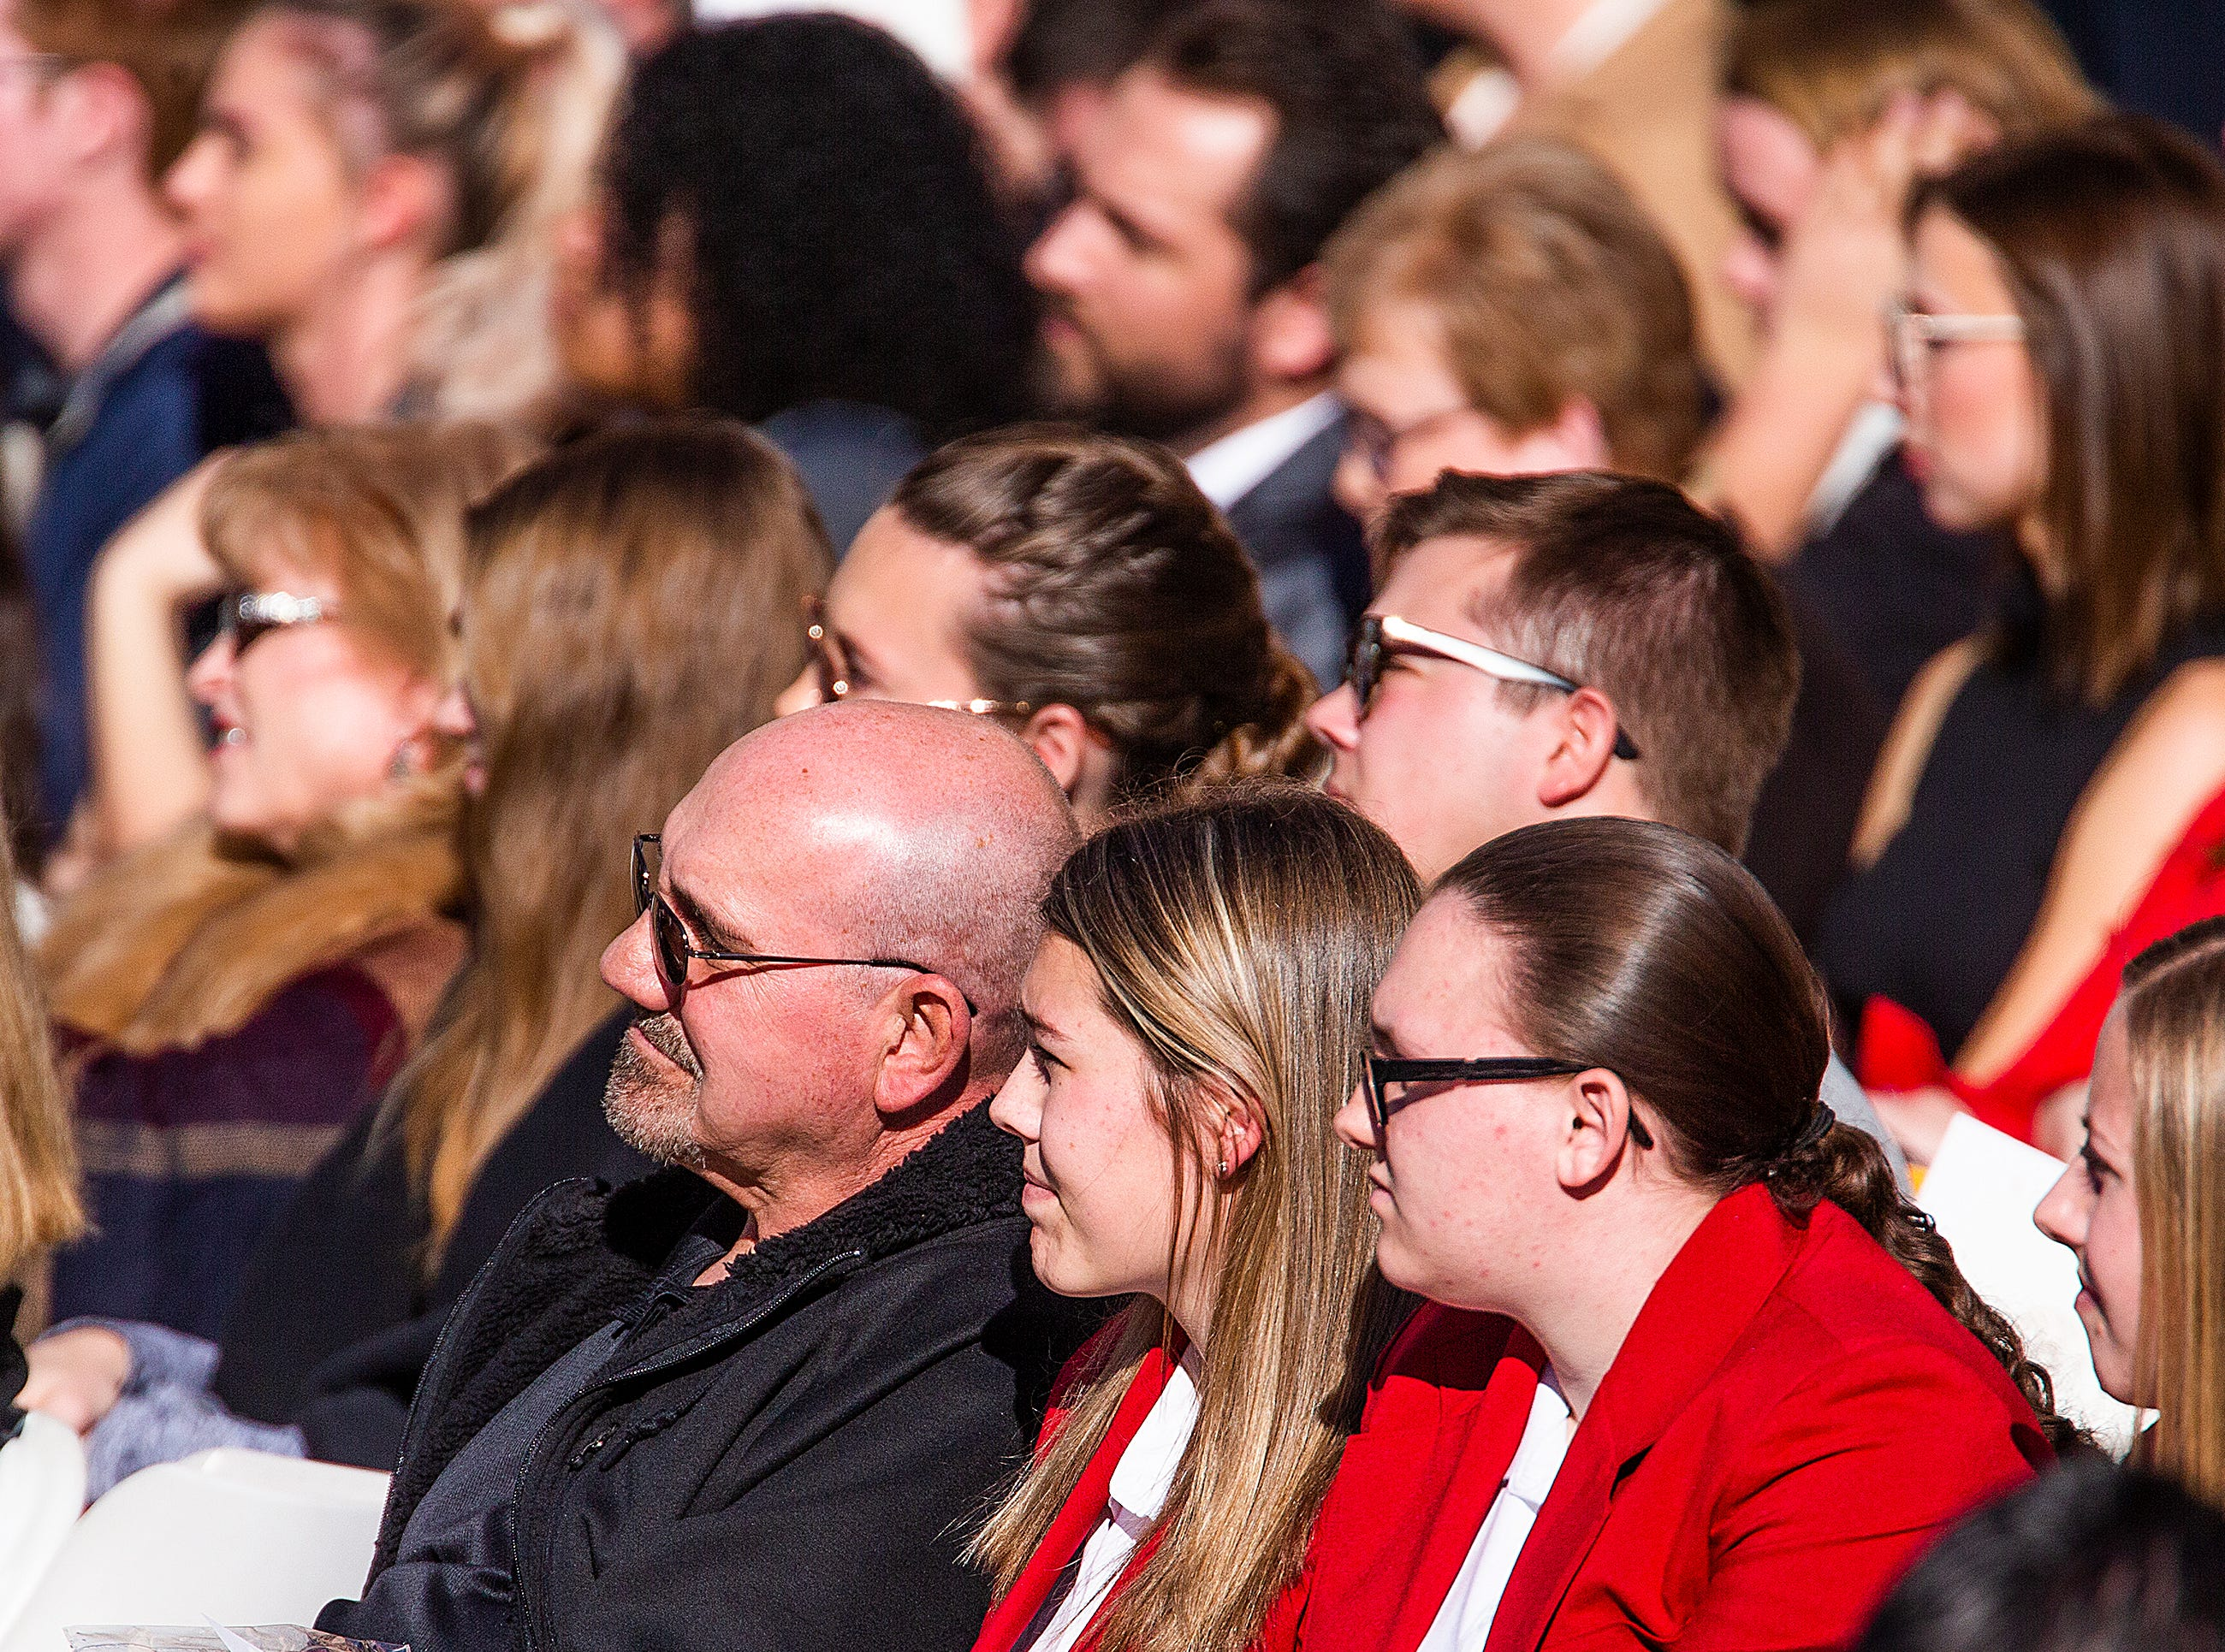 A crowd of several hundred listens to Gov. Doug Ducey after he was sworn in by Arizona Supreme Court Chief Justice Scott Bales at the Arizona Capitol in Phoenix at the 2019 State of Arizona Inauguration ceremony on Jan. 7, 2019.  Gov. Doug Ducey , Secretary of State Katie Hobbs, Attorney General Mark Brnovich, State Treasurer Kimberly Yee, Superintendent of Public Instruction Kathy Hoffman and State Mine Inspector Joe Hart were all sworn in to office during the ceremony.